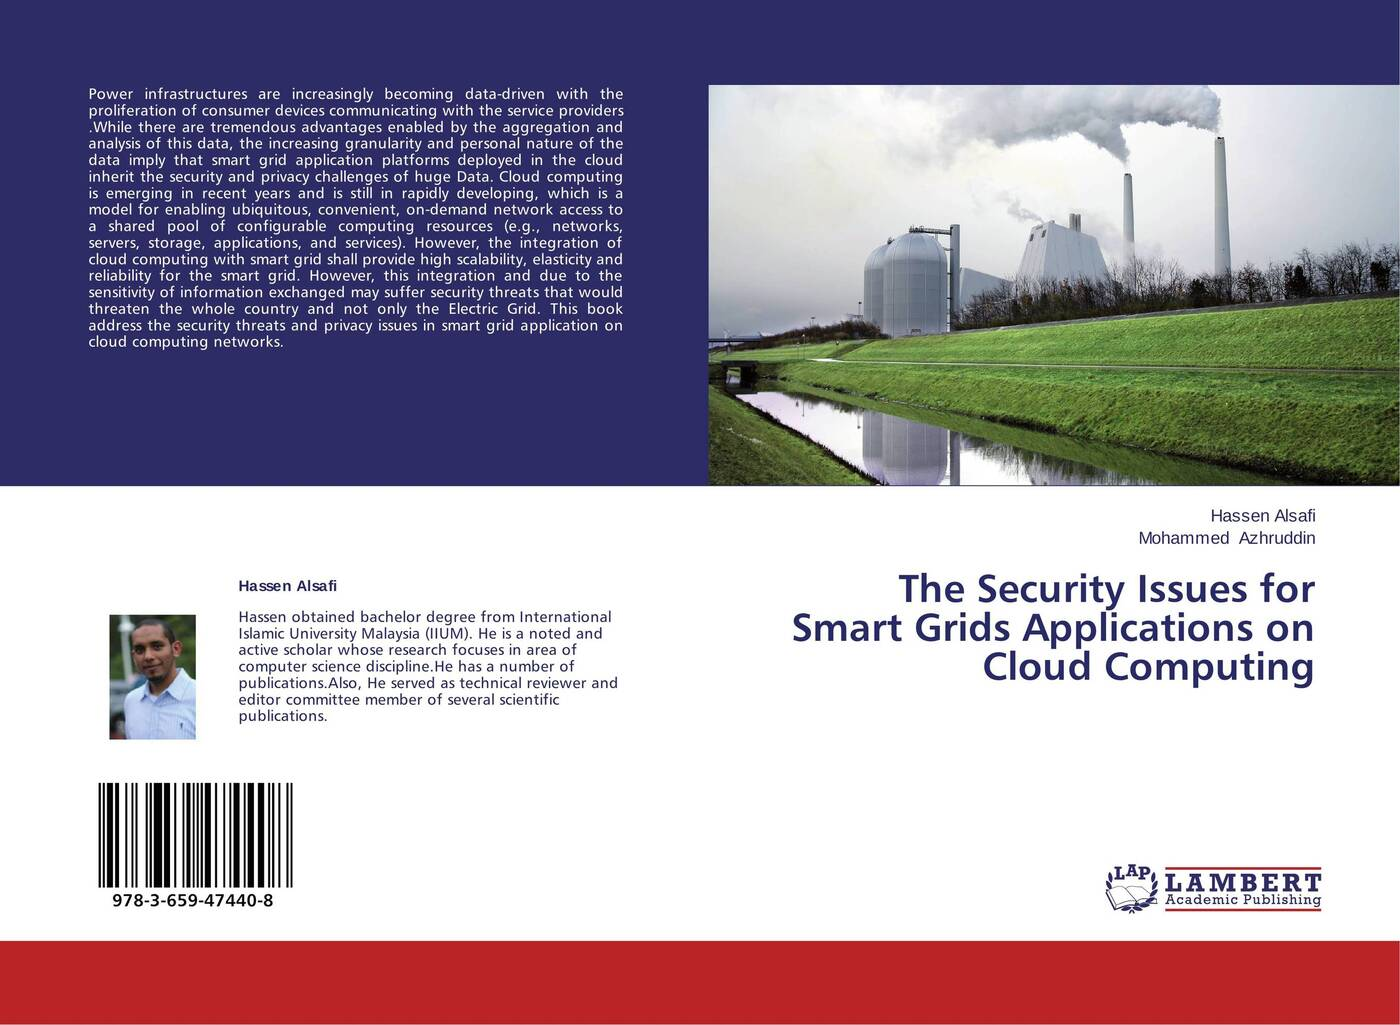 Hassen Alsafi and Mohammed Azhruddin The Security Issues for Smart Grids Applications on Cloud Computing nick jenkins smart grid technology and applications